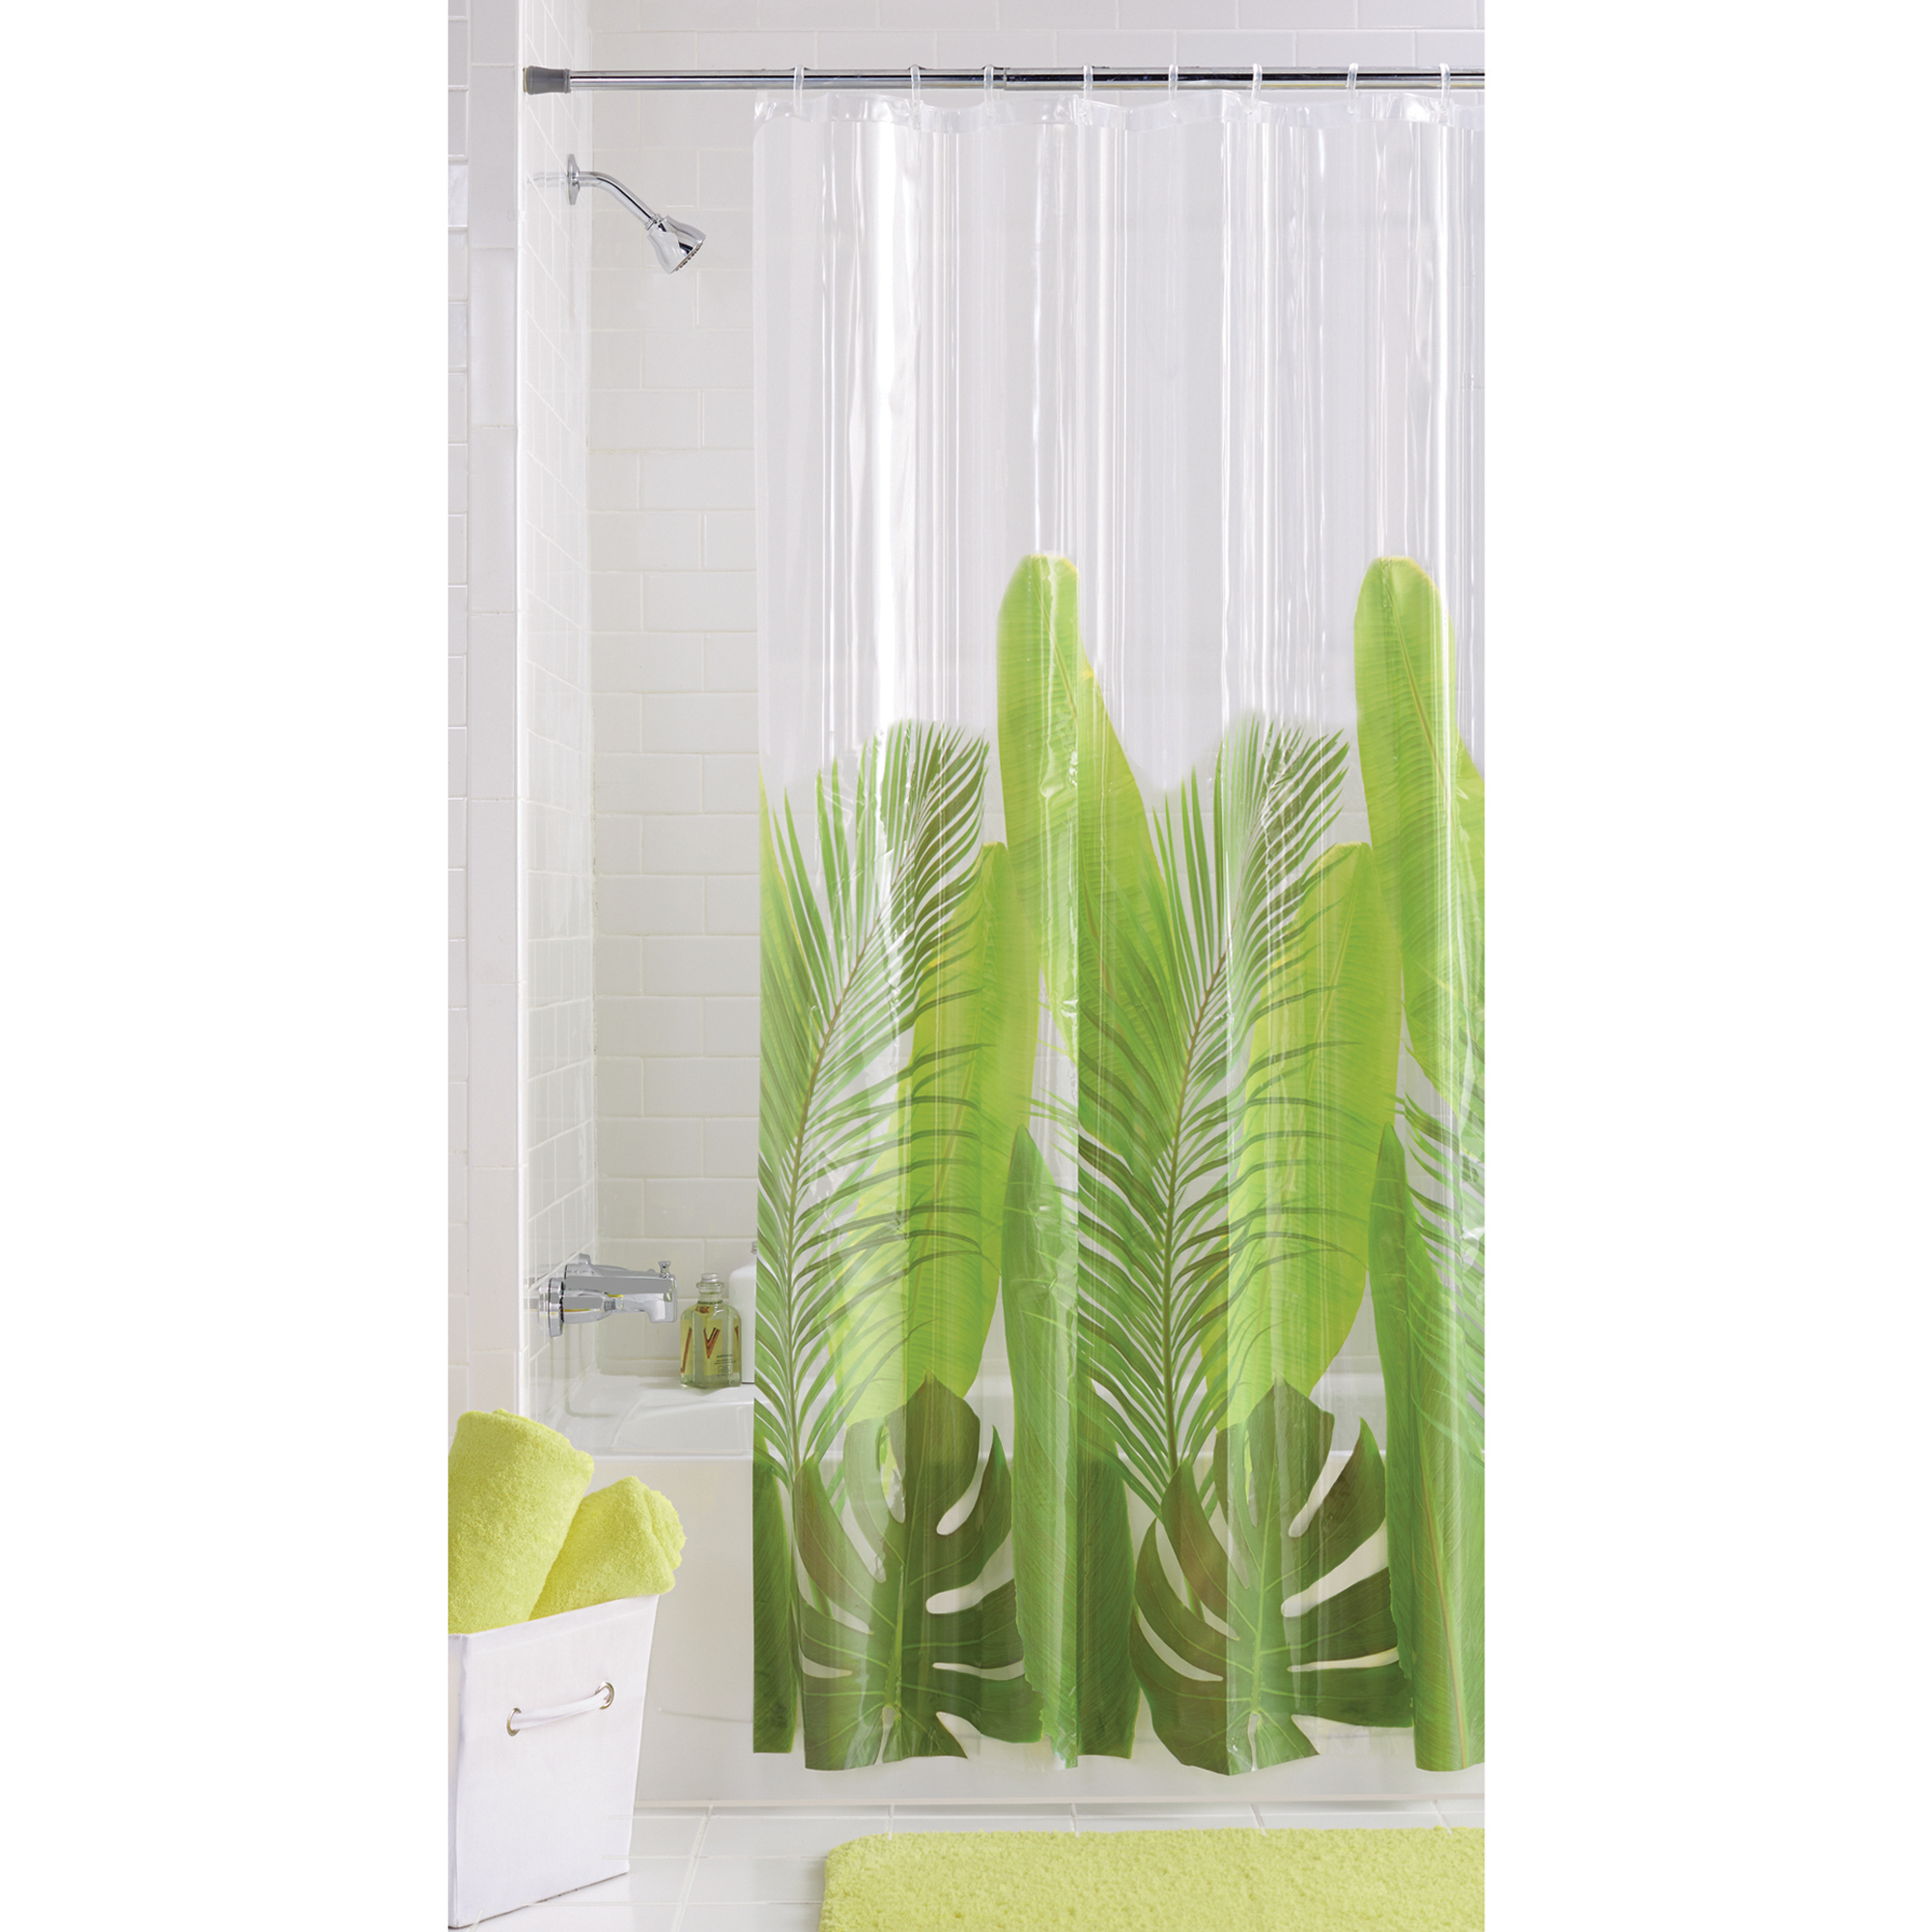 Mainstays Tropical Leaf Vinyl Shower Curtain by Maytex Mills